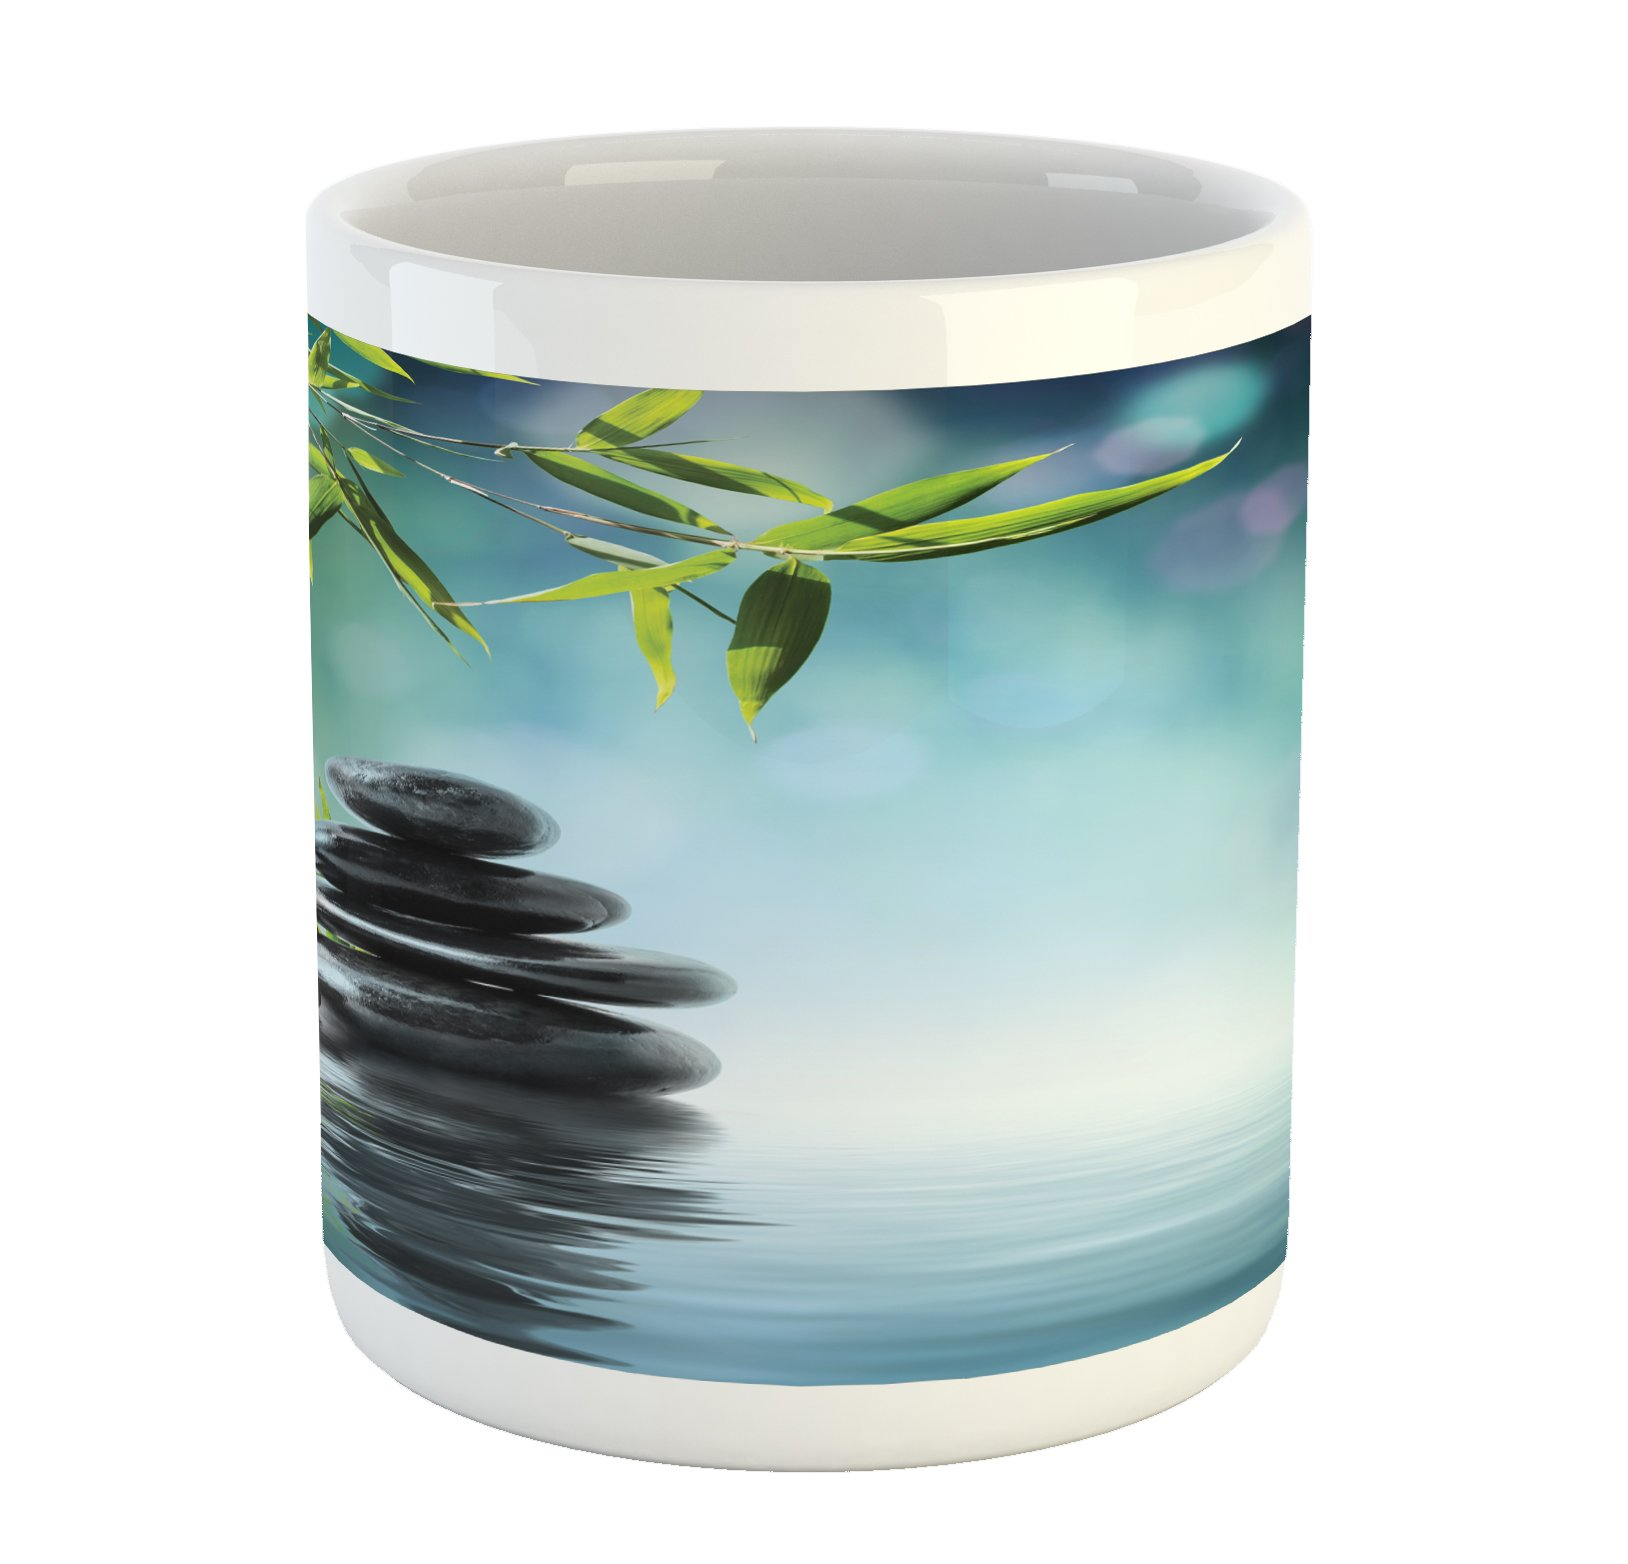 Ambesonne Zen Garden Mug, Pink Flower Spa Stones and Bamboo Tree on the Water Relaxation Theraphy Peace, Printed Ceramic Coffee Mug Water Tea Drinks Cup, Multicolor